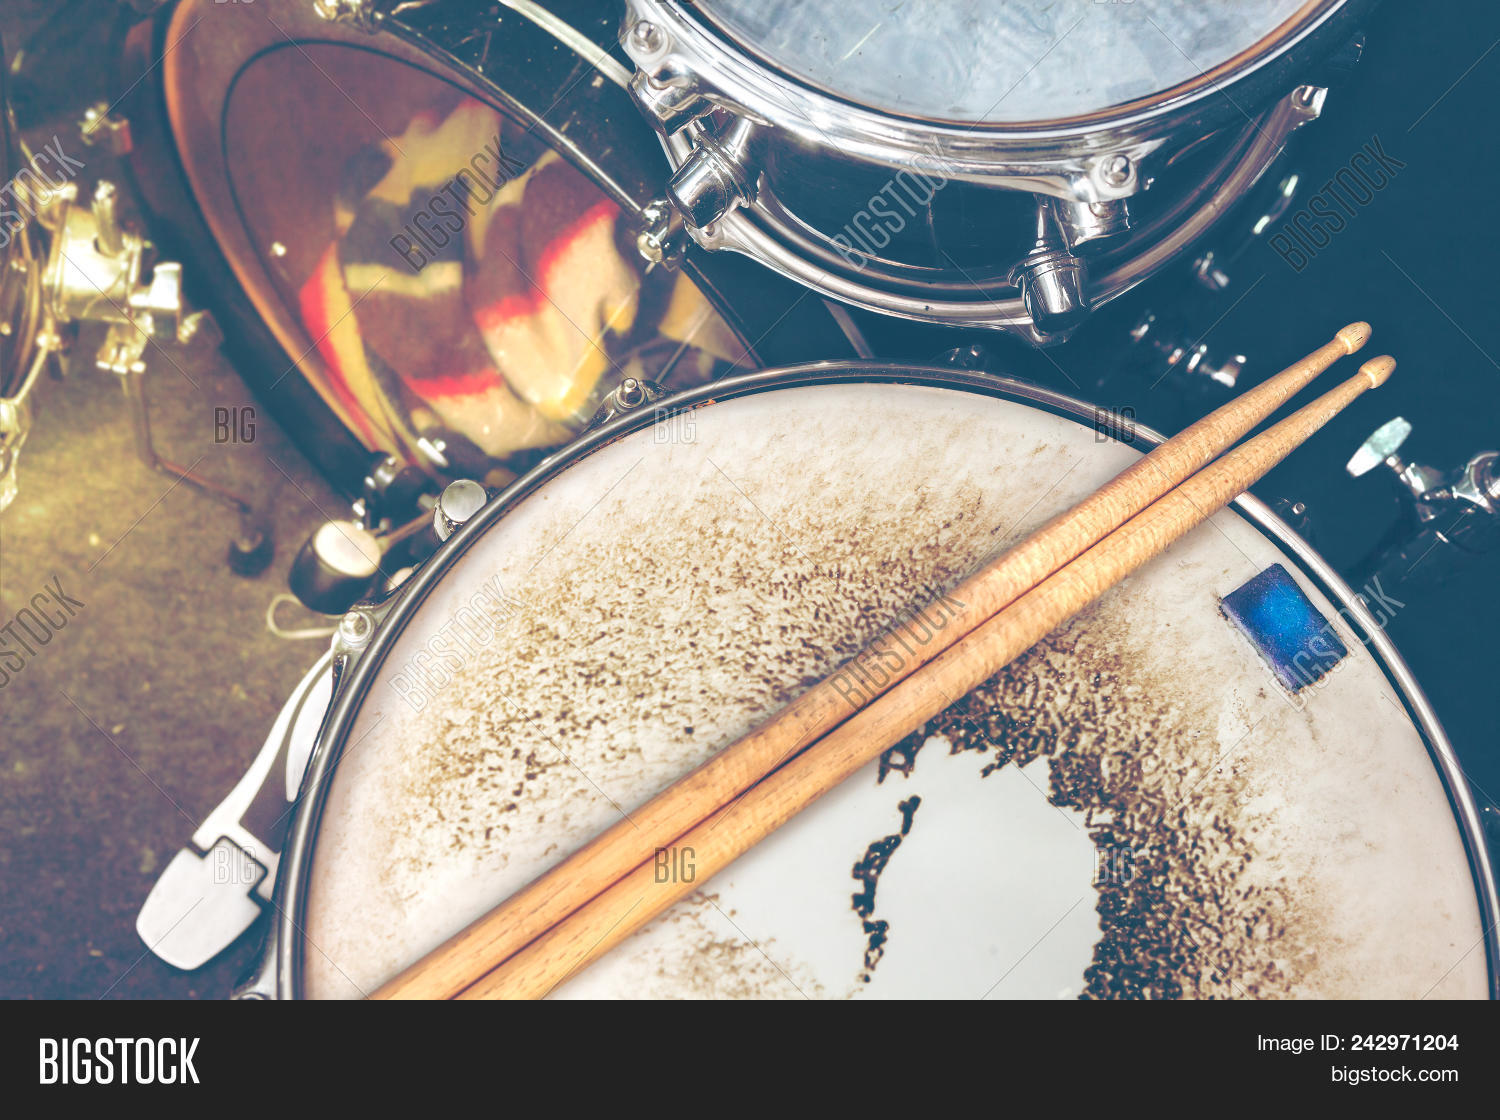 Live Music concert Image & Photo (Free Trial) | Bigstock